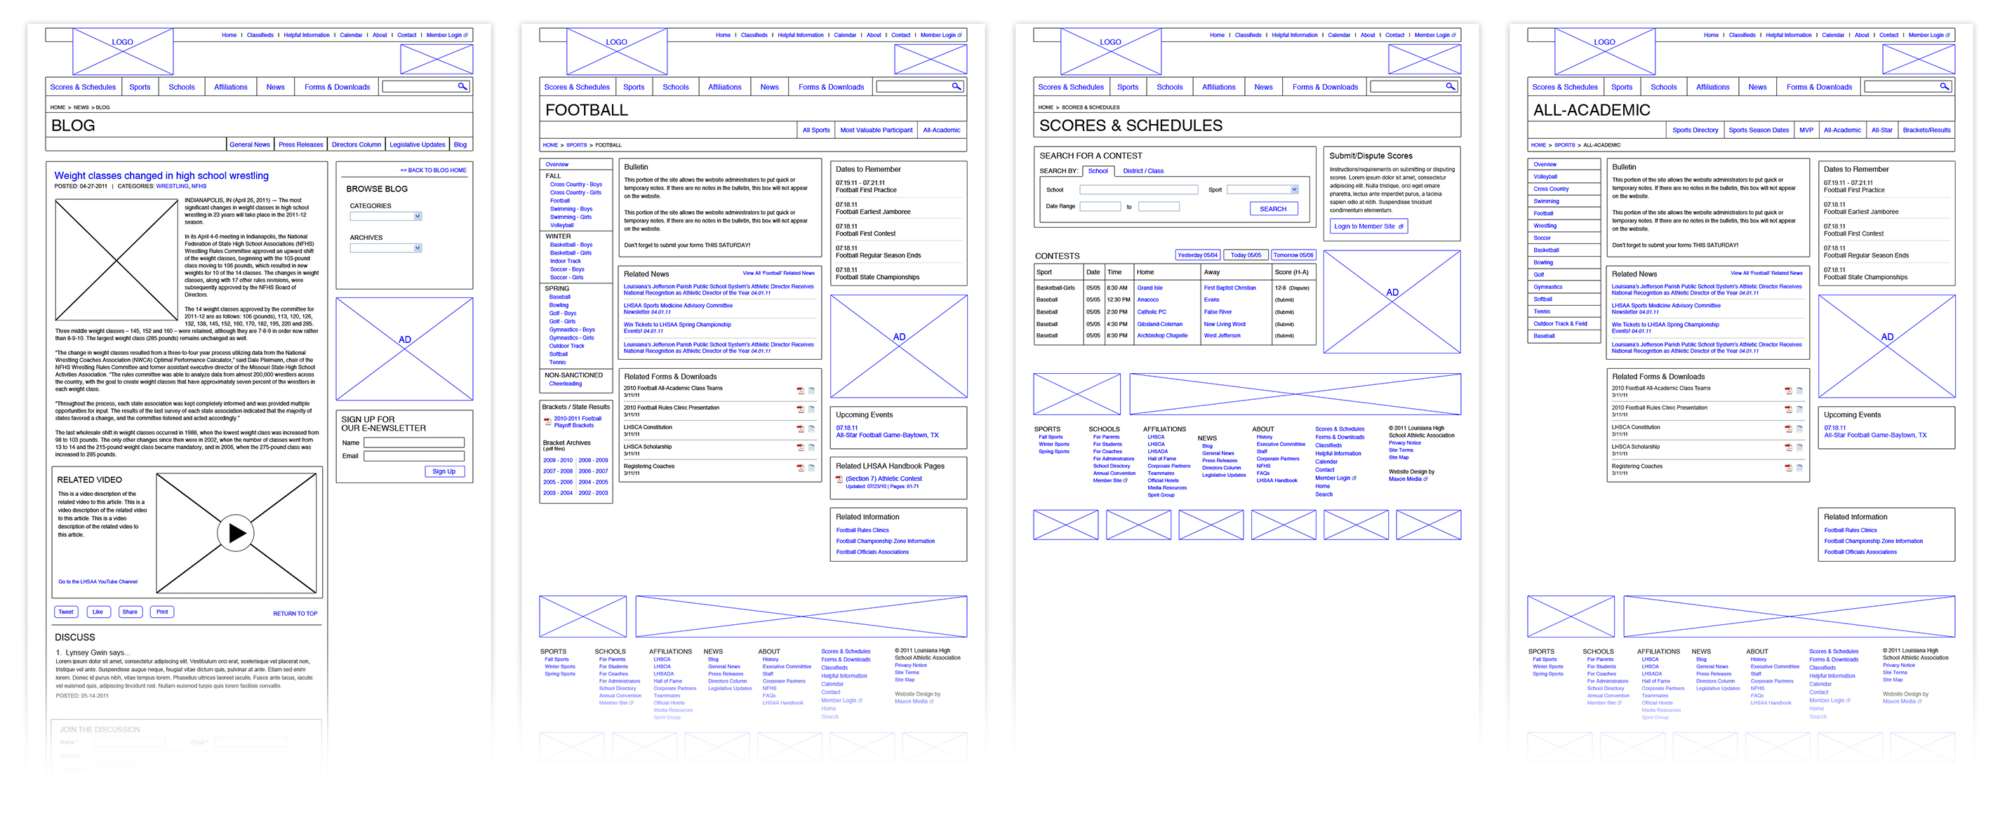 LHSAA Website Wireframes